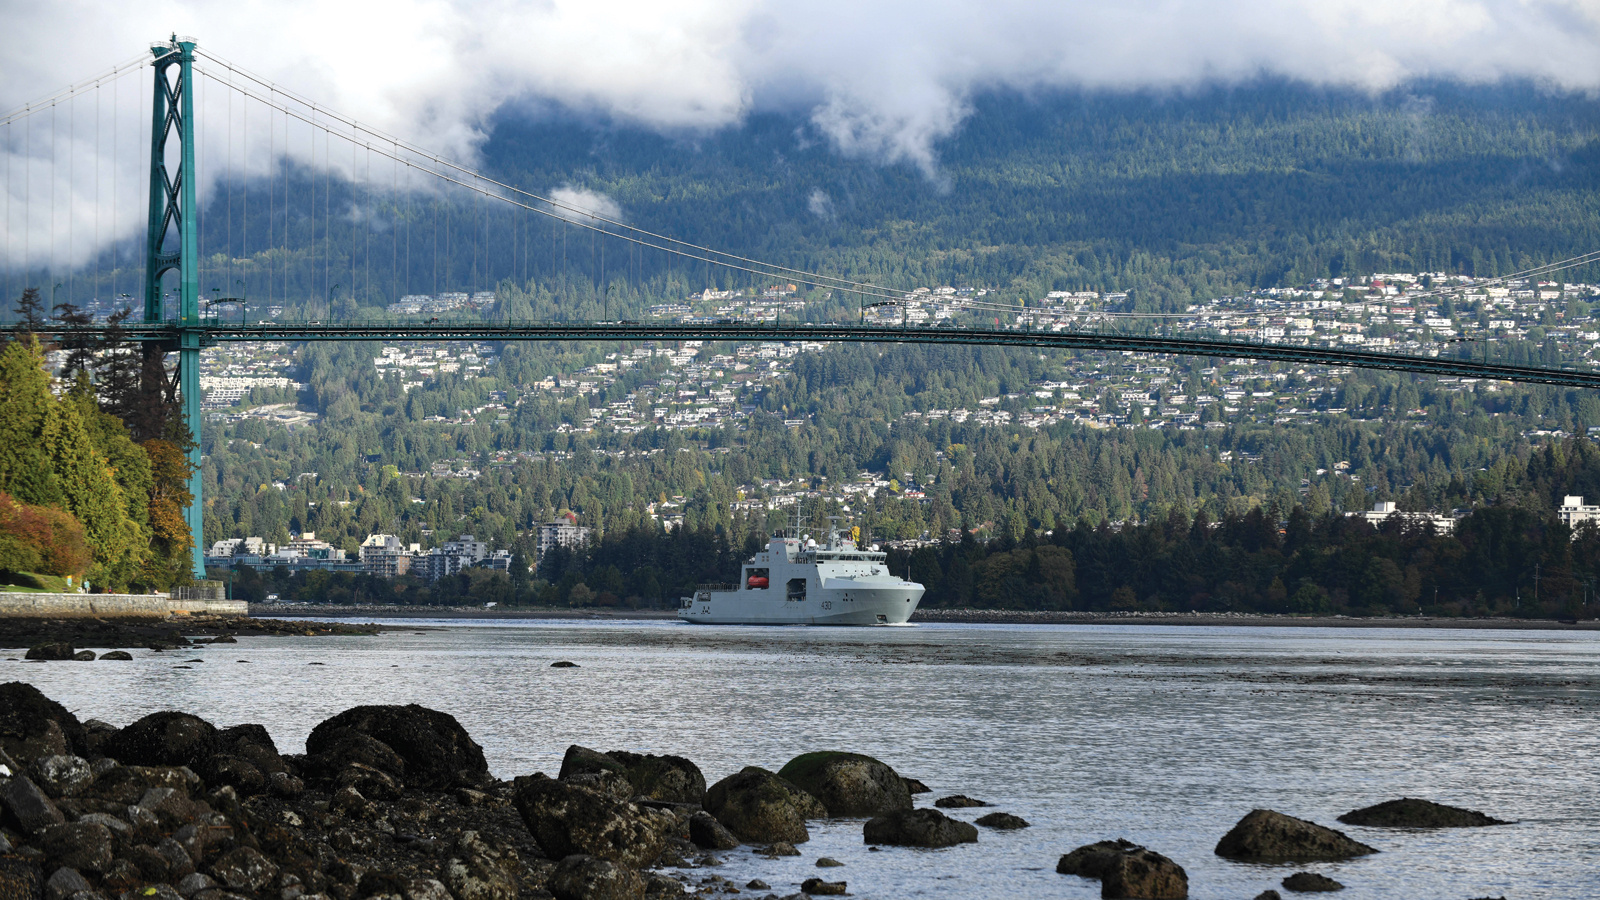 HMCS Harry DeWolf  traverses under the Lions Gate Bridge in Vancouver, British Columbia for the first time. Photo by MCpl Nathan Spence, MARPAC Imaging Services